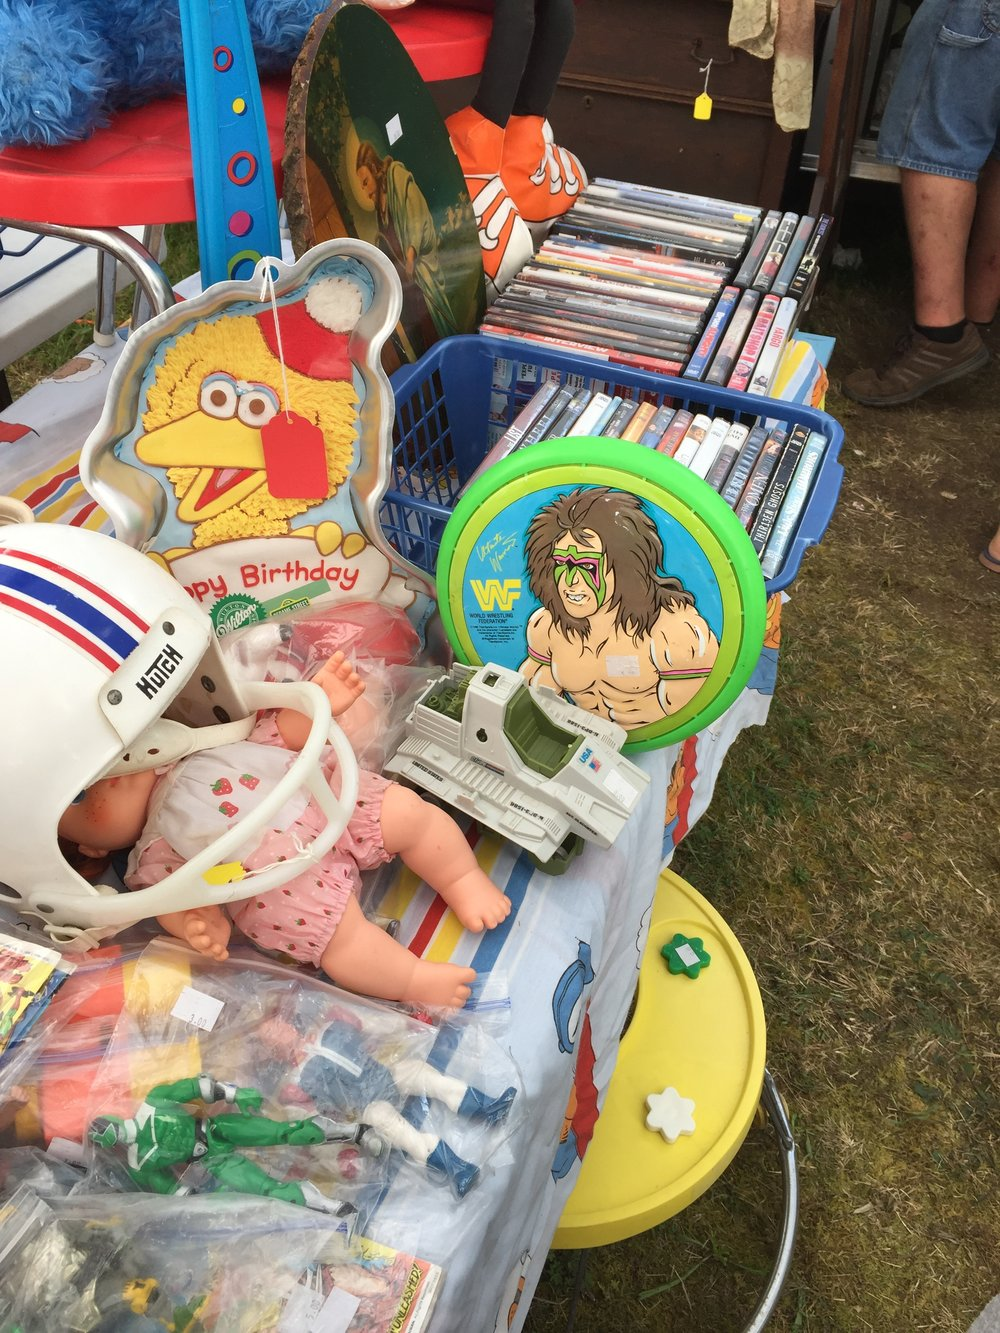 What goodies came you spot? A power Ranger, A plastic football helmet, the remains of a G.I. Joe Triple T tank, An ultimate warrior WWF Frisbee, Big Bird, DVDs, and more!